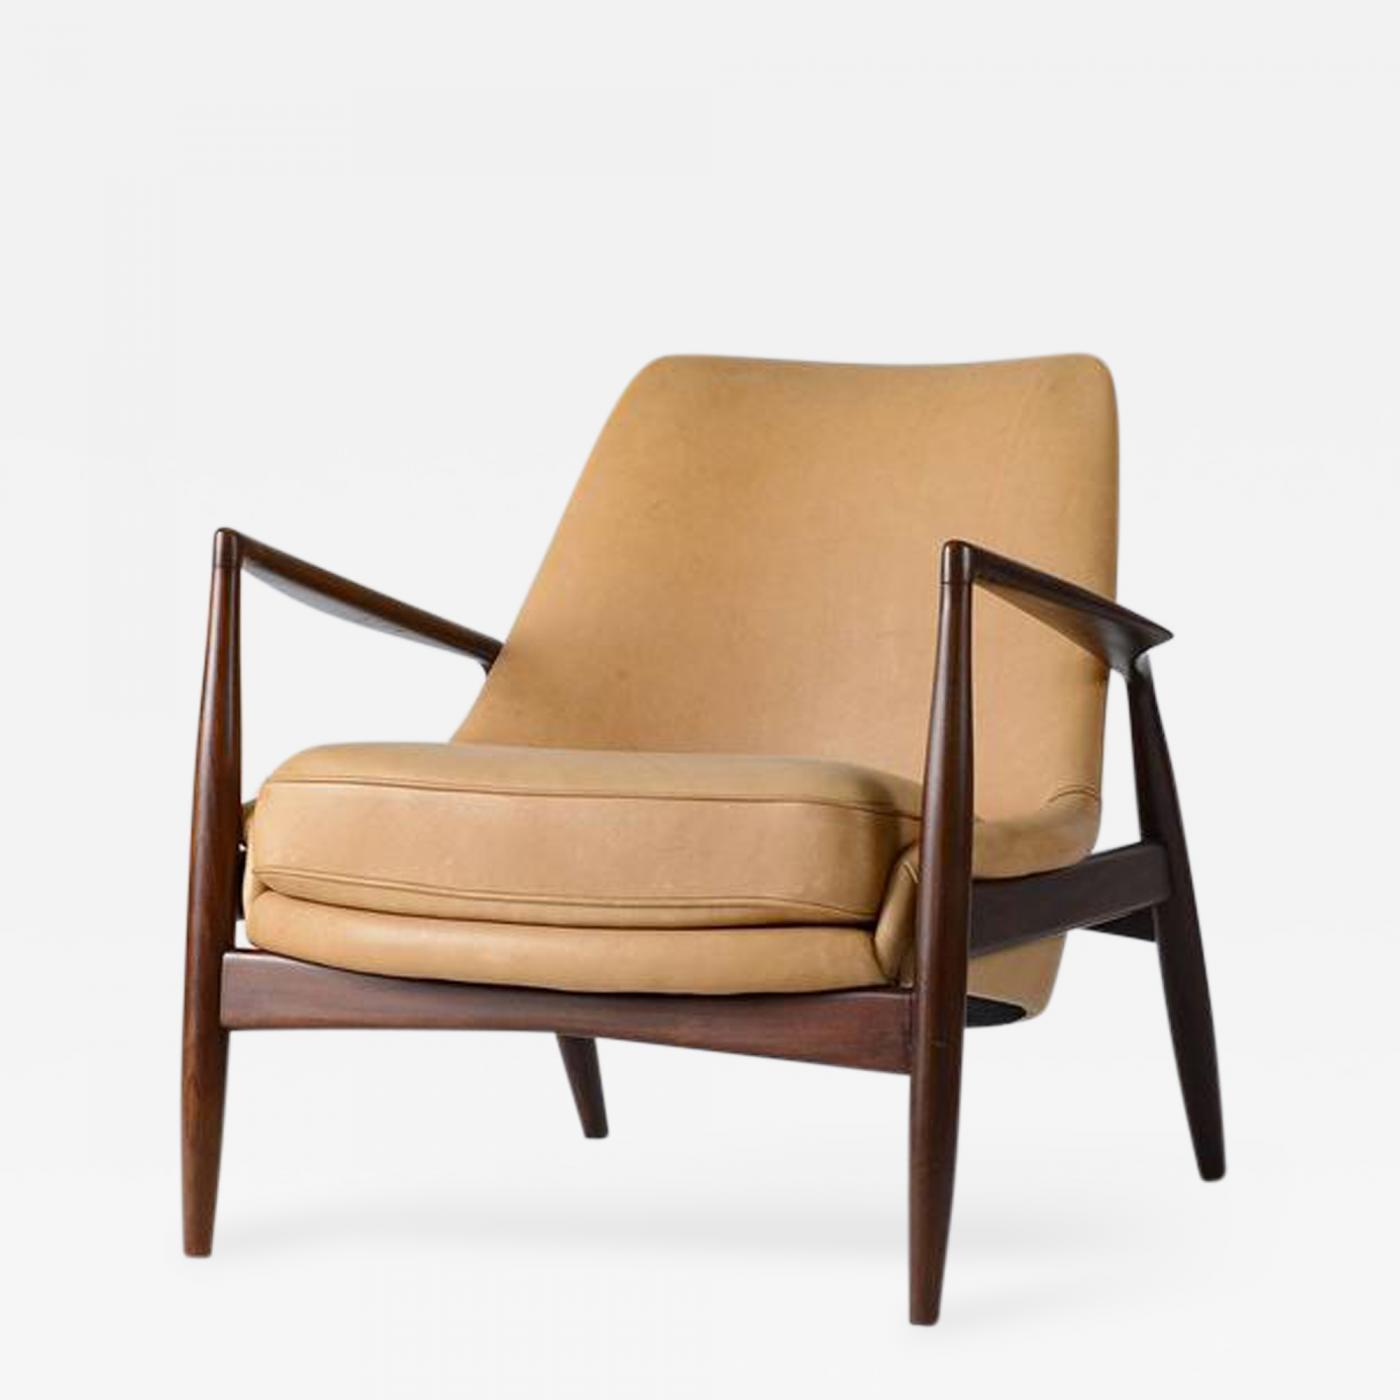 Charmant Listings / Furniture / Seating / Armchairs · Ib Kofod Larsen Ib Kofod Larsen  Seal Chair